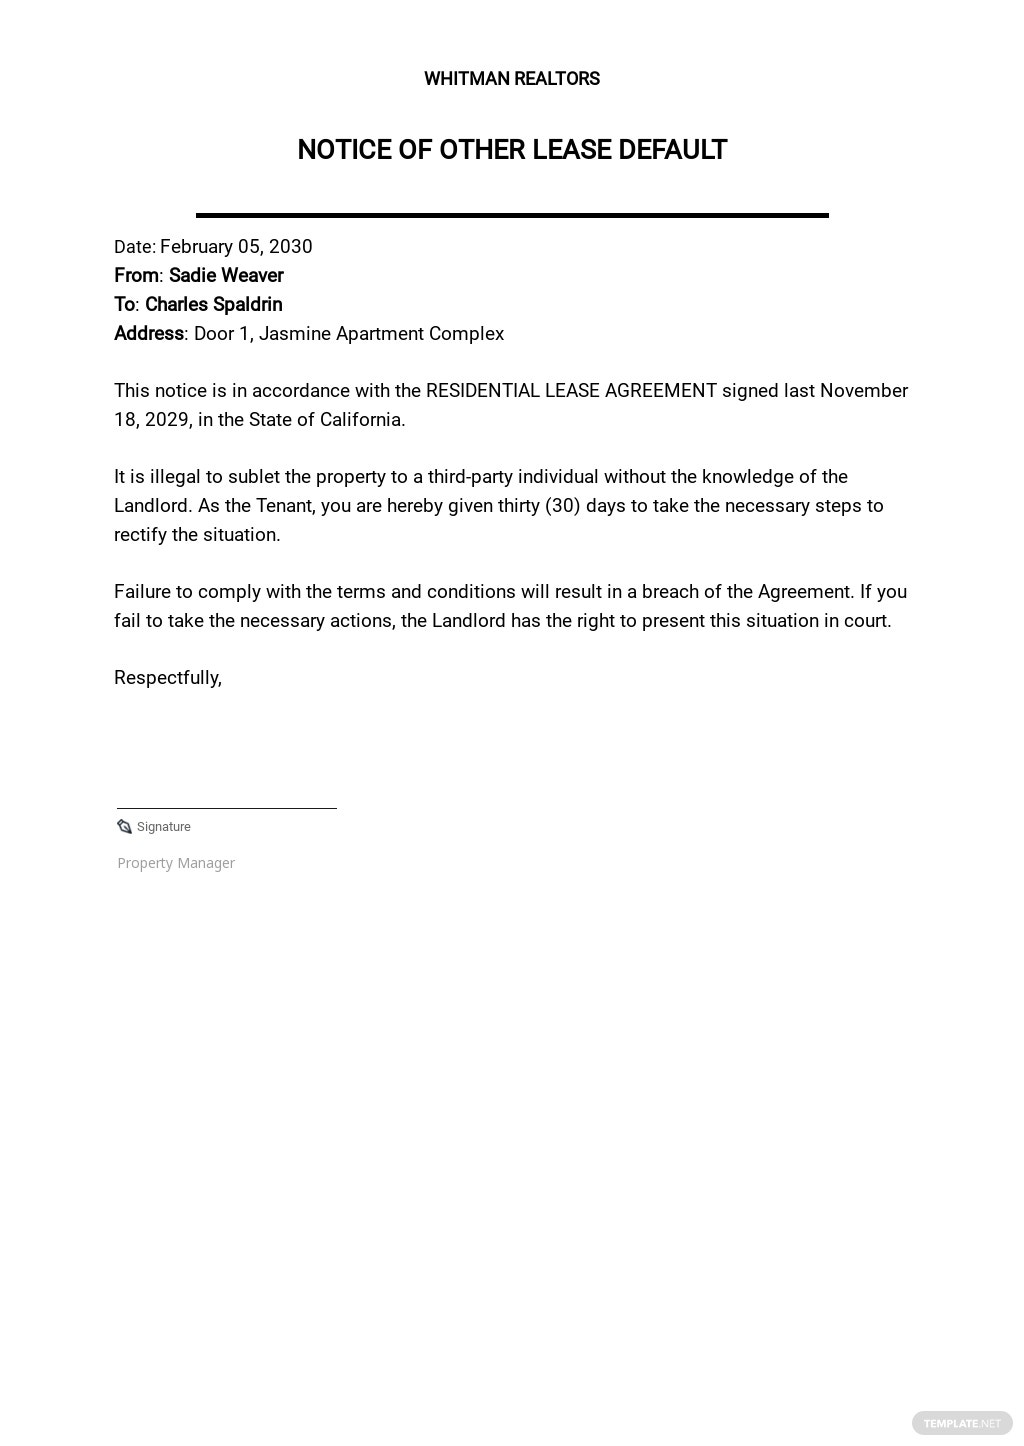 Notice of Other Lease Default Template.jpe